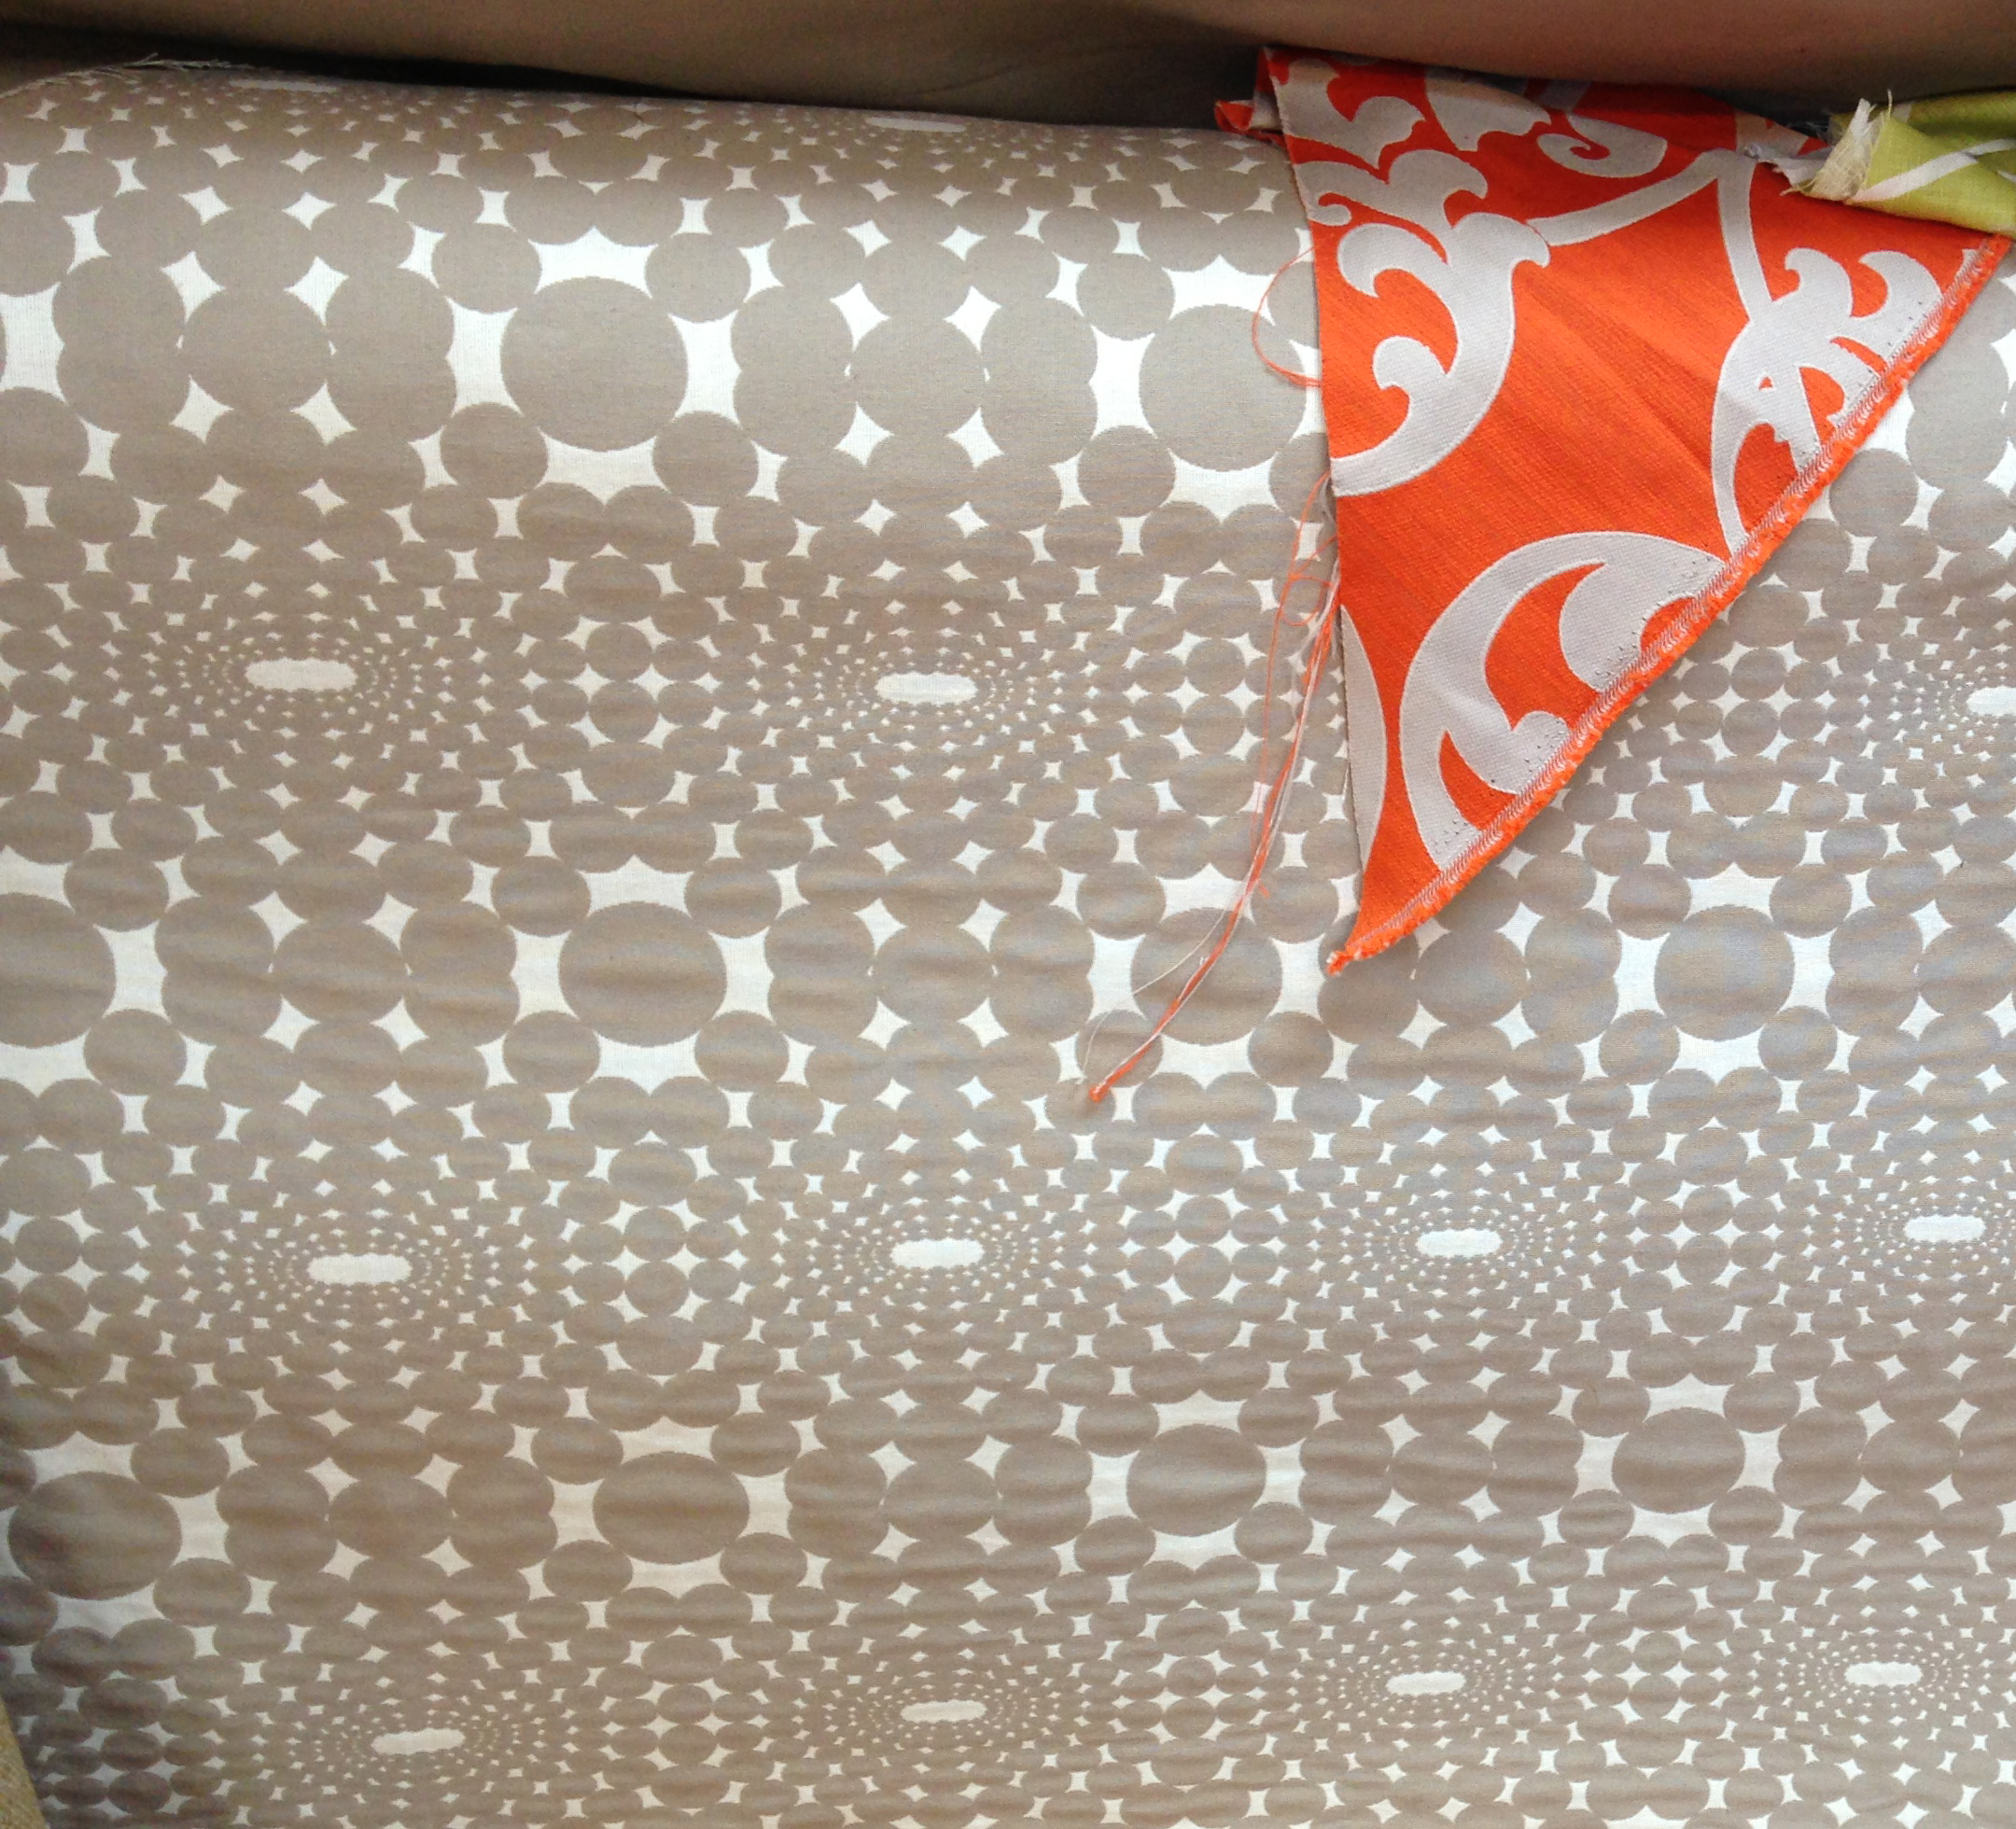 Main fabric for foursome of chairs is the grey circles. The orange print is for the front of the taller 5th chair.